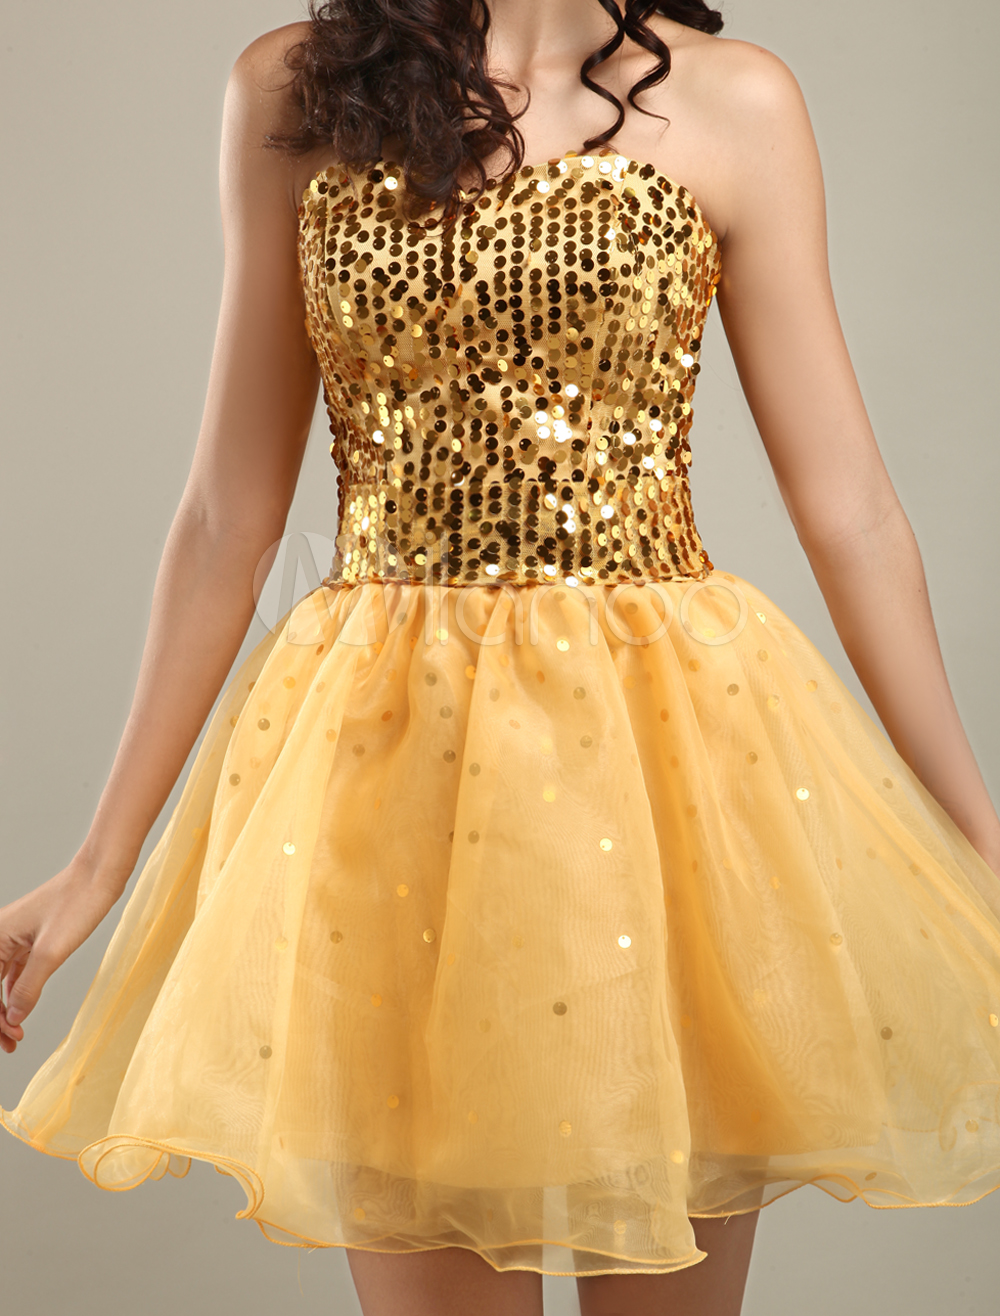 China Wholesale Clothes - Sweet Gold Strapless Sweetheart Mini Length Yarn Cocktail Dress